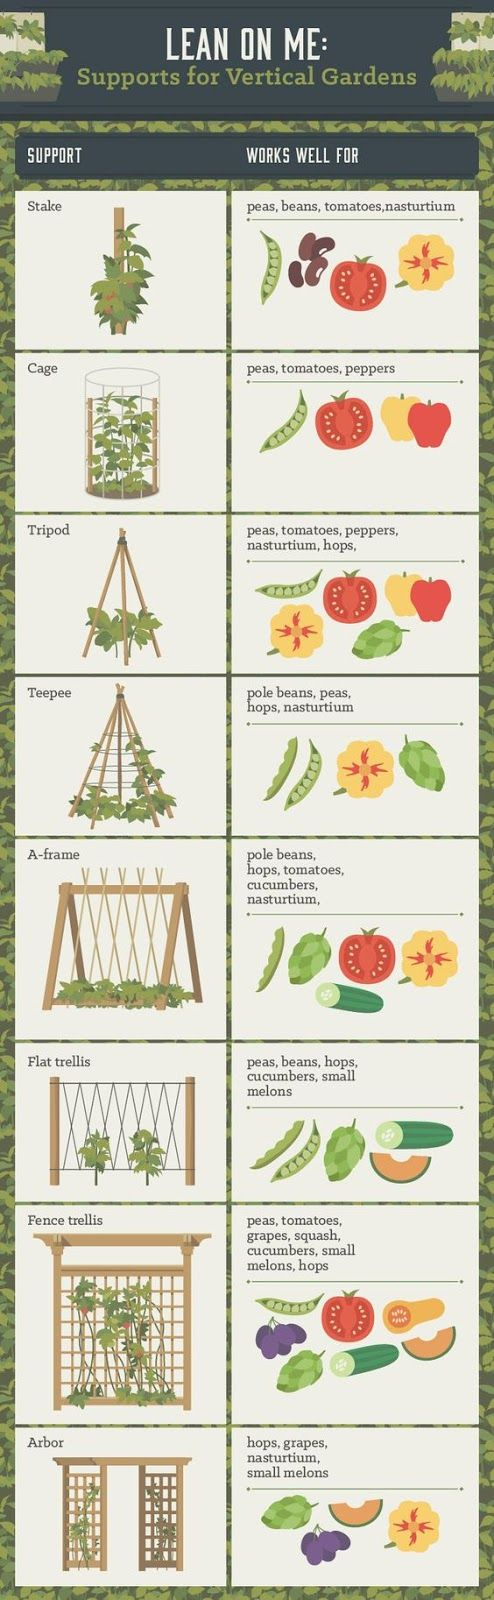 Garden Layout Ideas more vegetable garden design ideas Best 25 Garden Layouts Ideas On Pinterest